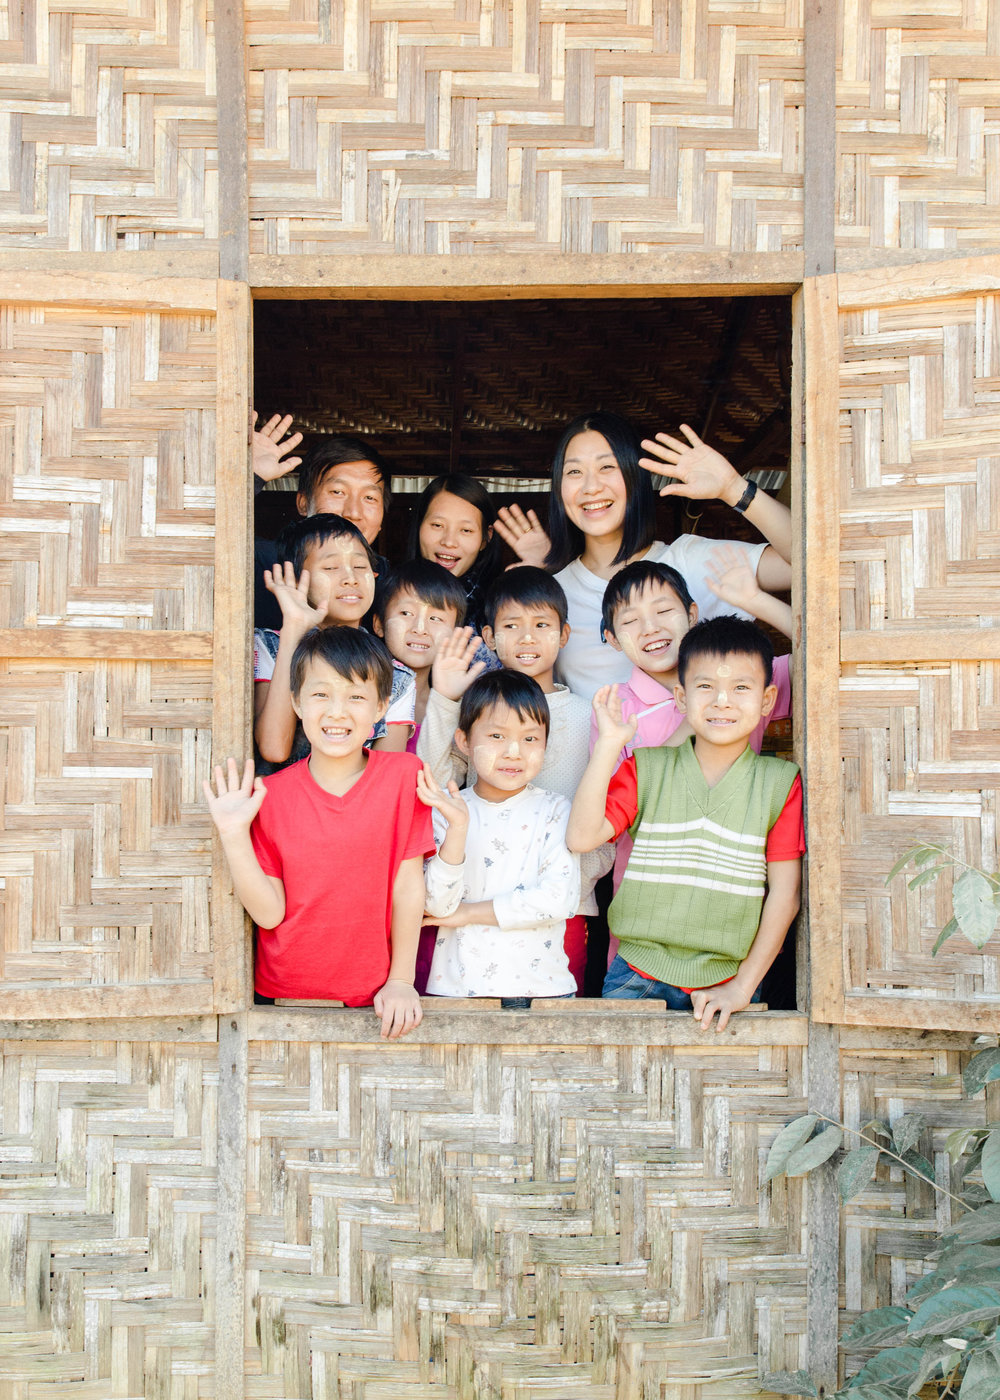 Documenting a safe home in Pyin Oo Lwin village, Myanmar. Many of these children lost their homes to due to the civil war that has been going for the last 70 years. Most of these children don't know their names, age or where they are from.